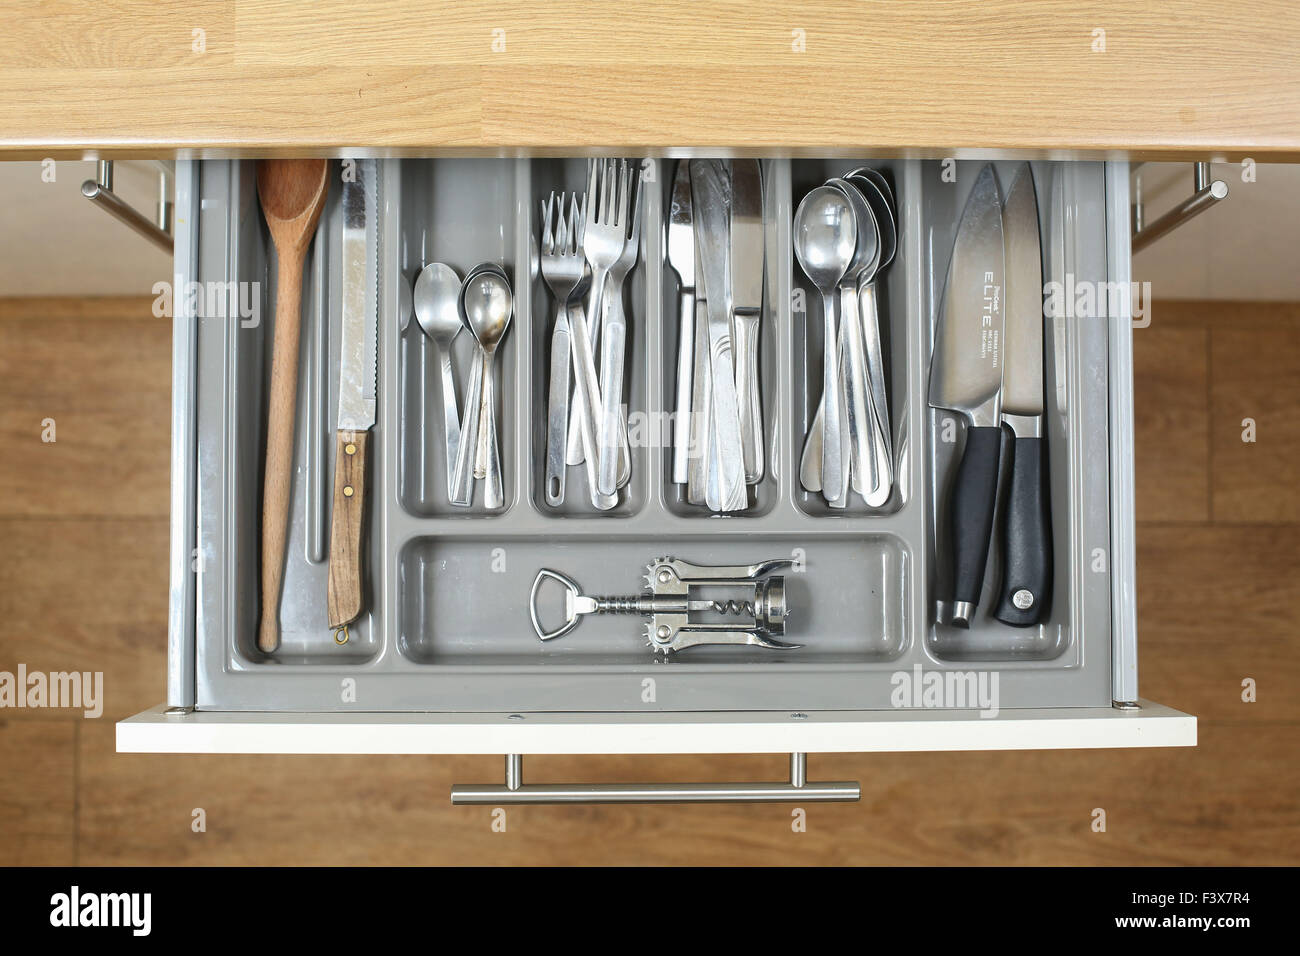 A kitchen drawer full of all the cutlery, knives and utensils needed to cook up a storm. - Stock Image